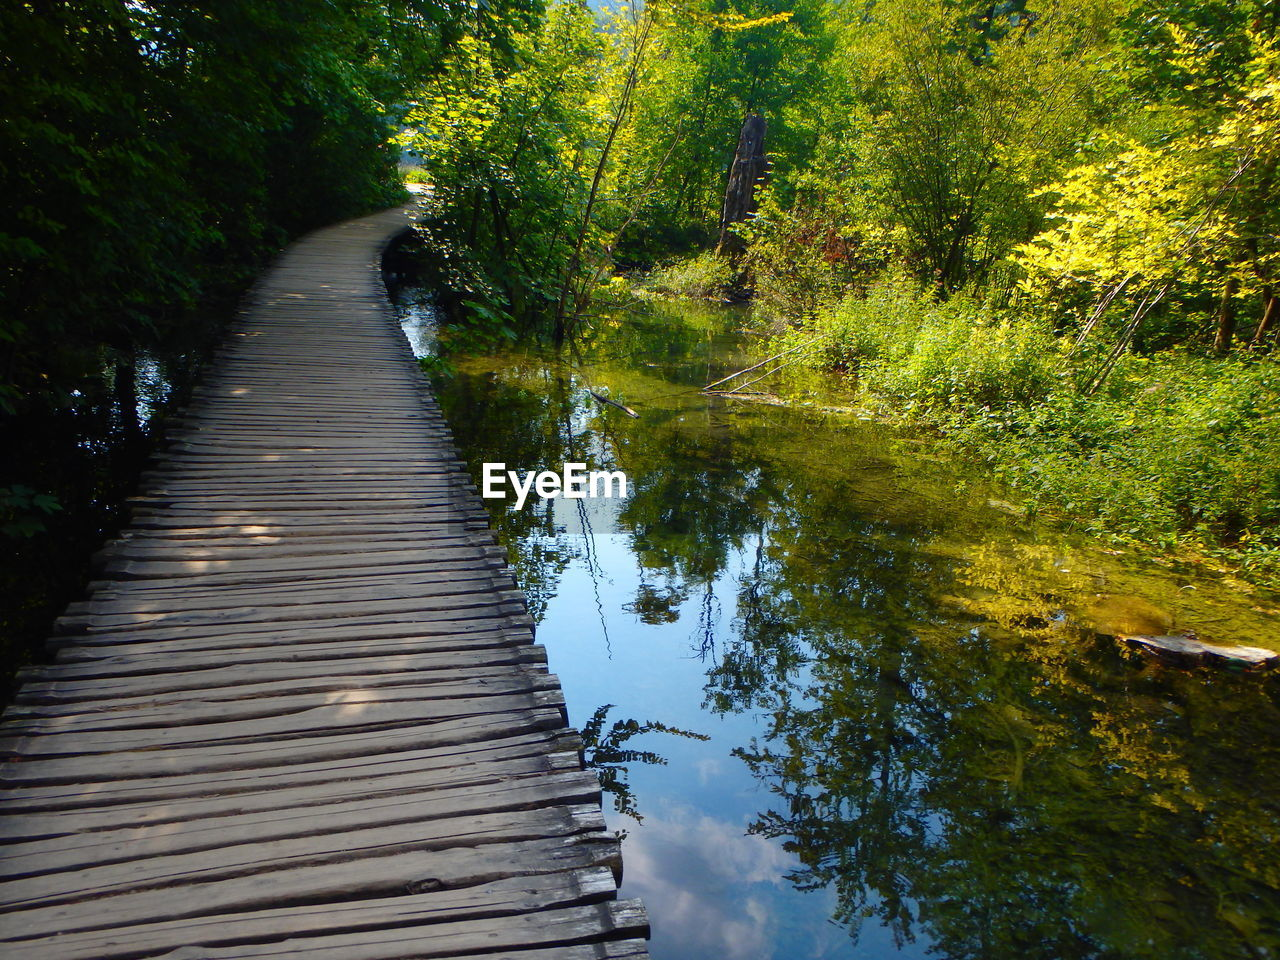 nature, tranquil scene, water, tranquility, tree, the way forward, day, beauty in nature, no people, outdoors, river, autumn, scenics, forest, grass